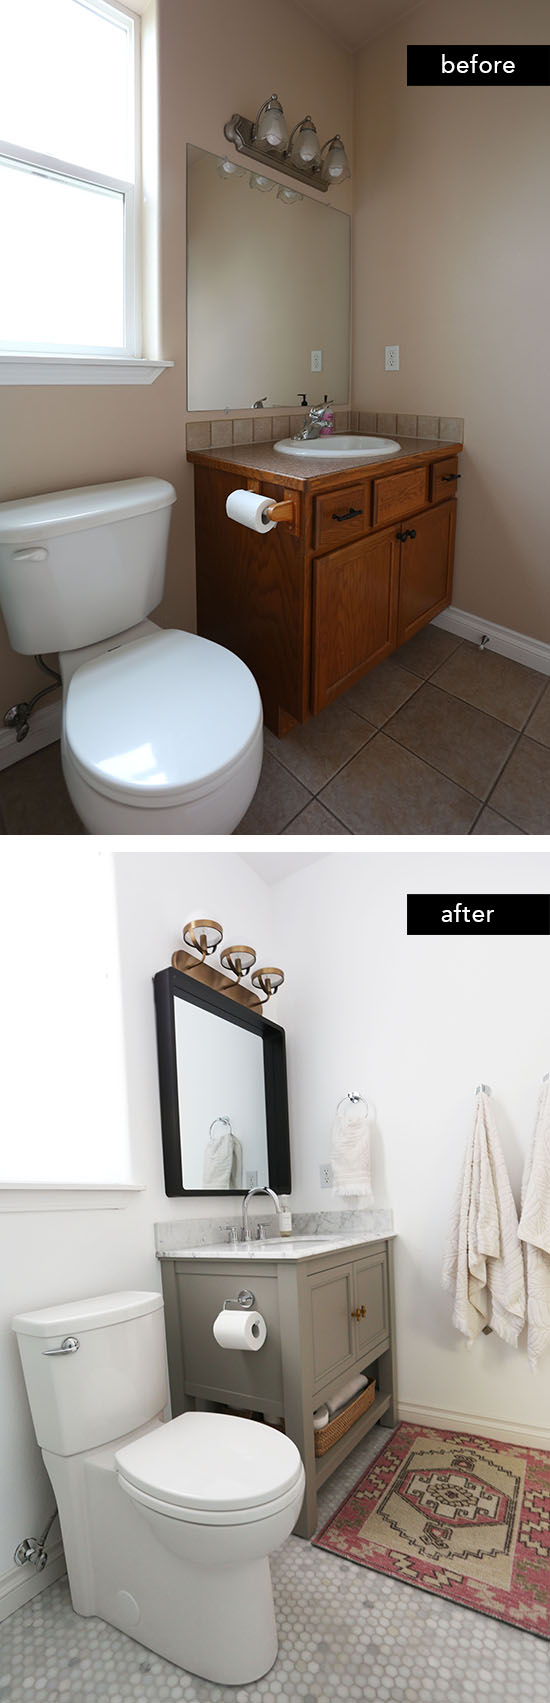 At home in love inspiring interiors stylish trends - Budget friendly bathroom remodel ...